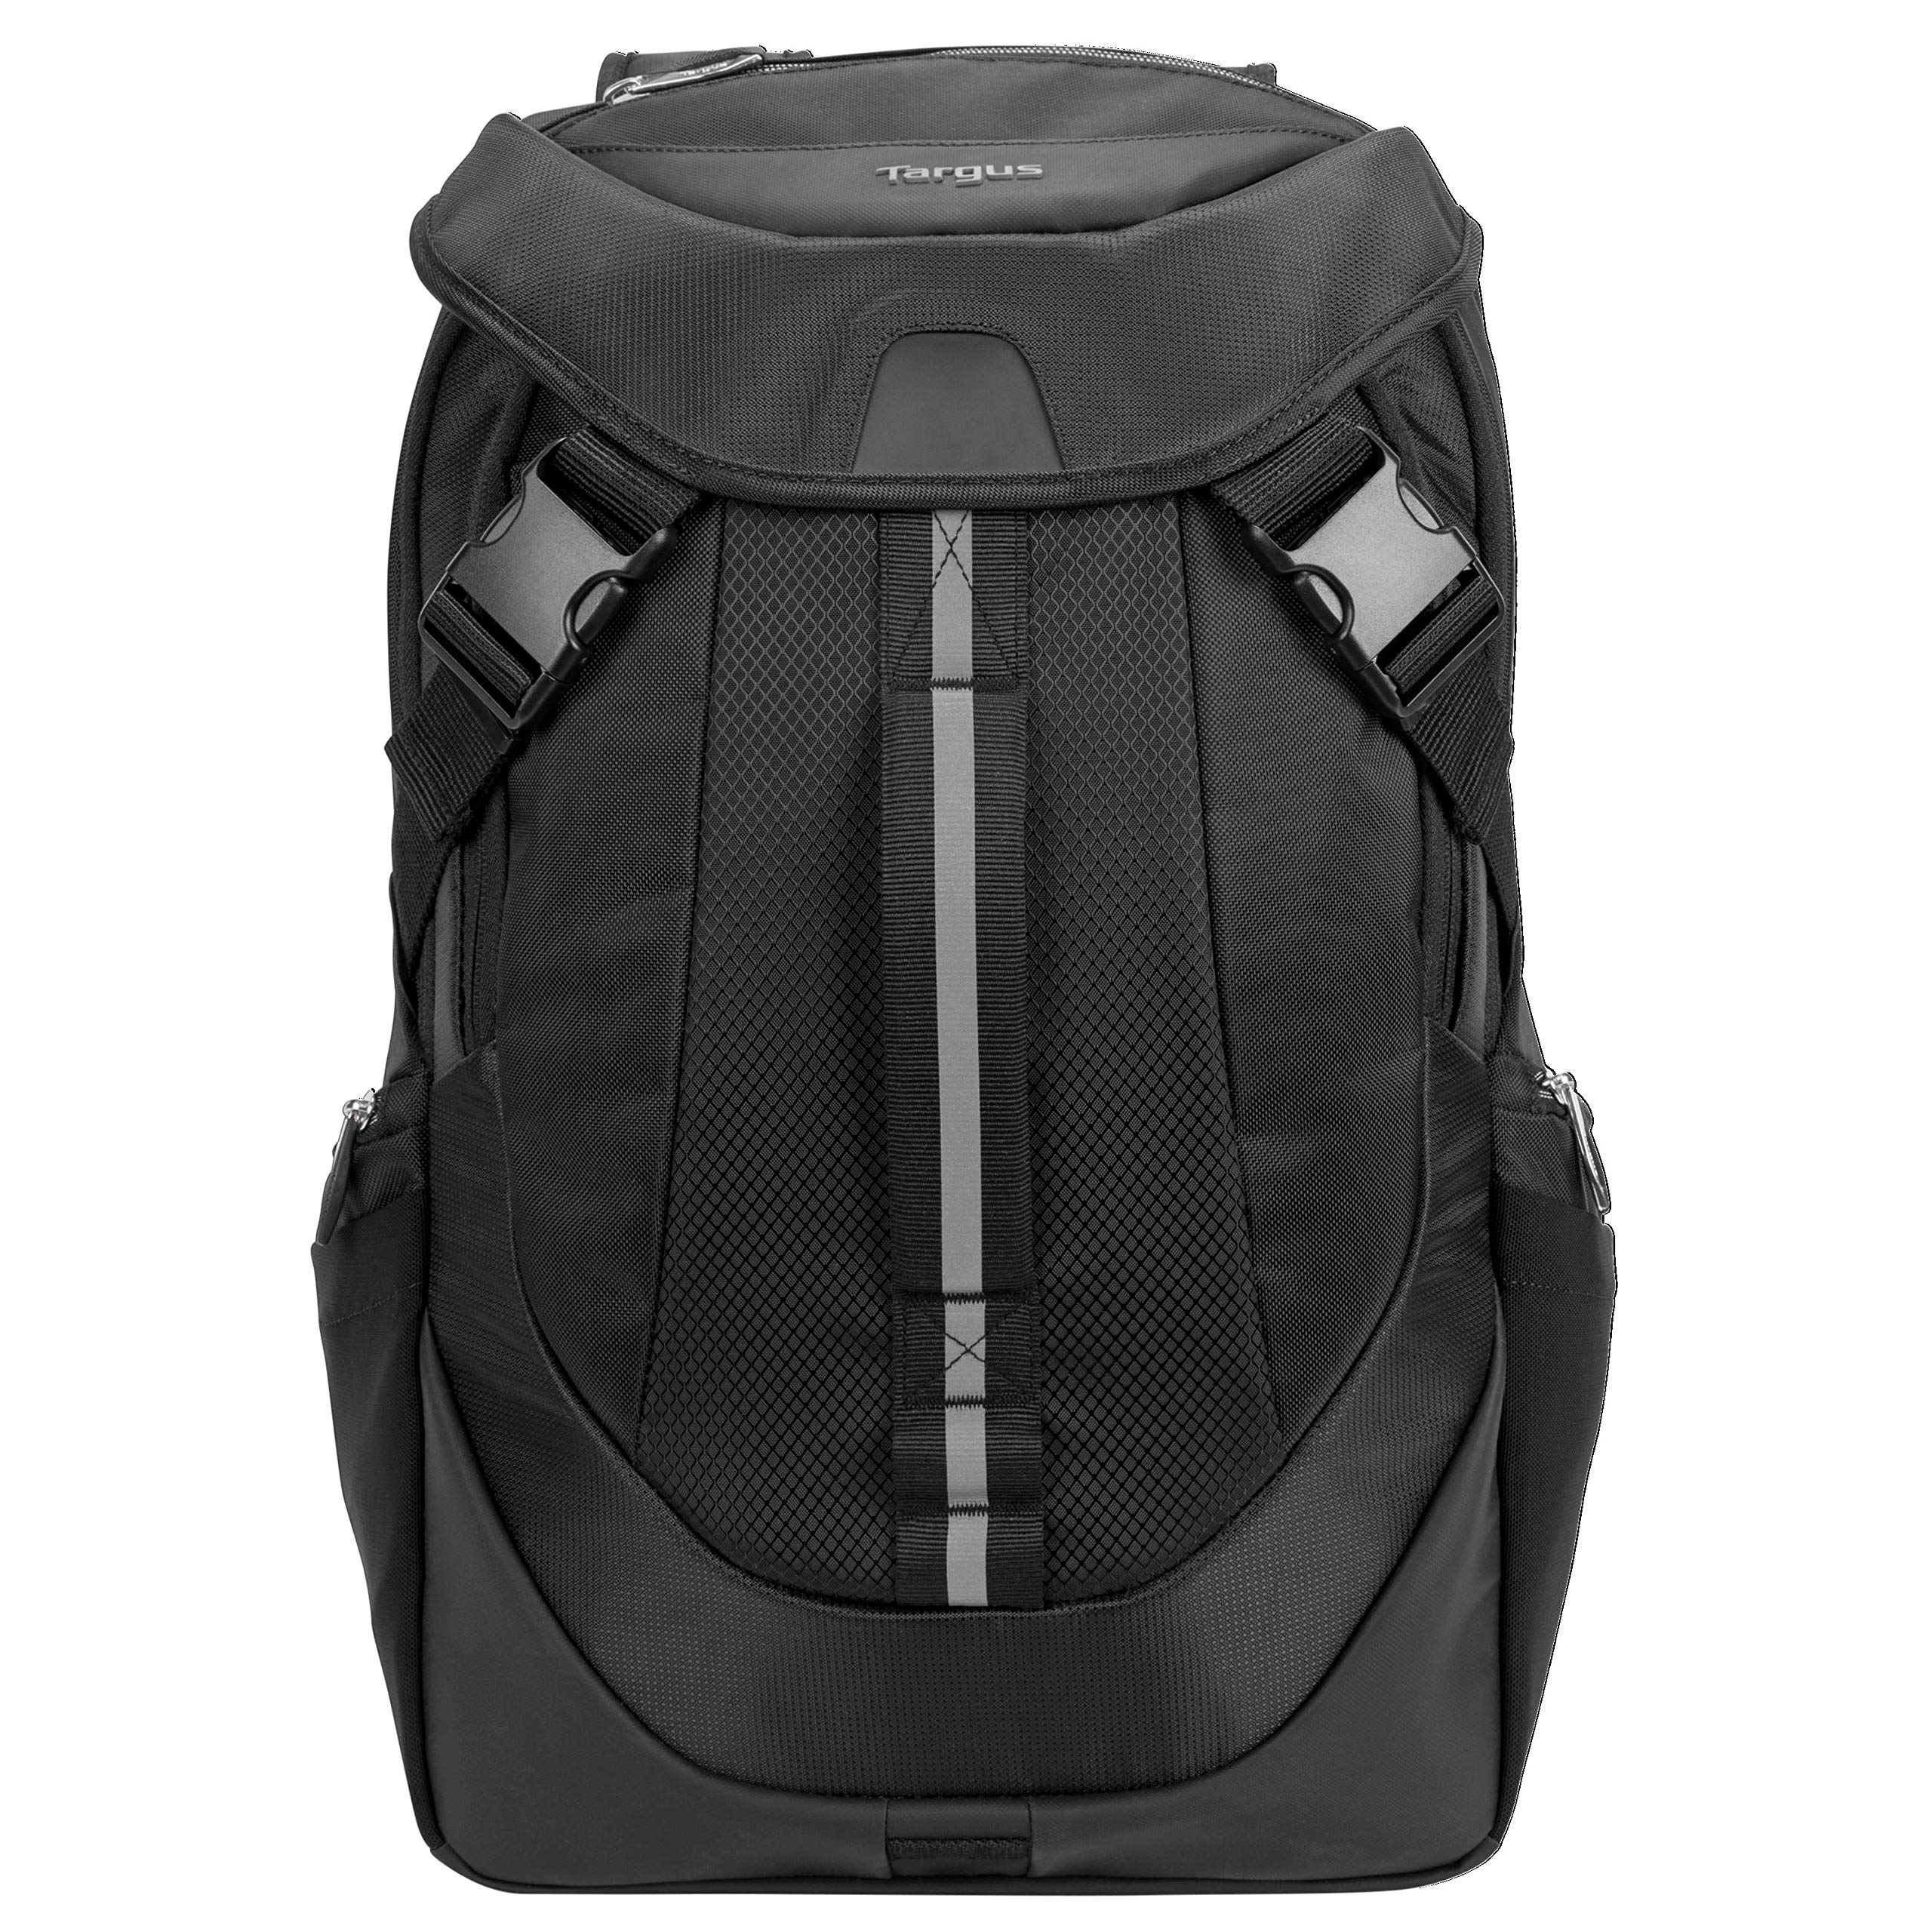 Targus Voyager II Travel and Commuter Business Backpack for 17.3-Inch Laptop, Black (TSB953GL) by Targus